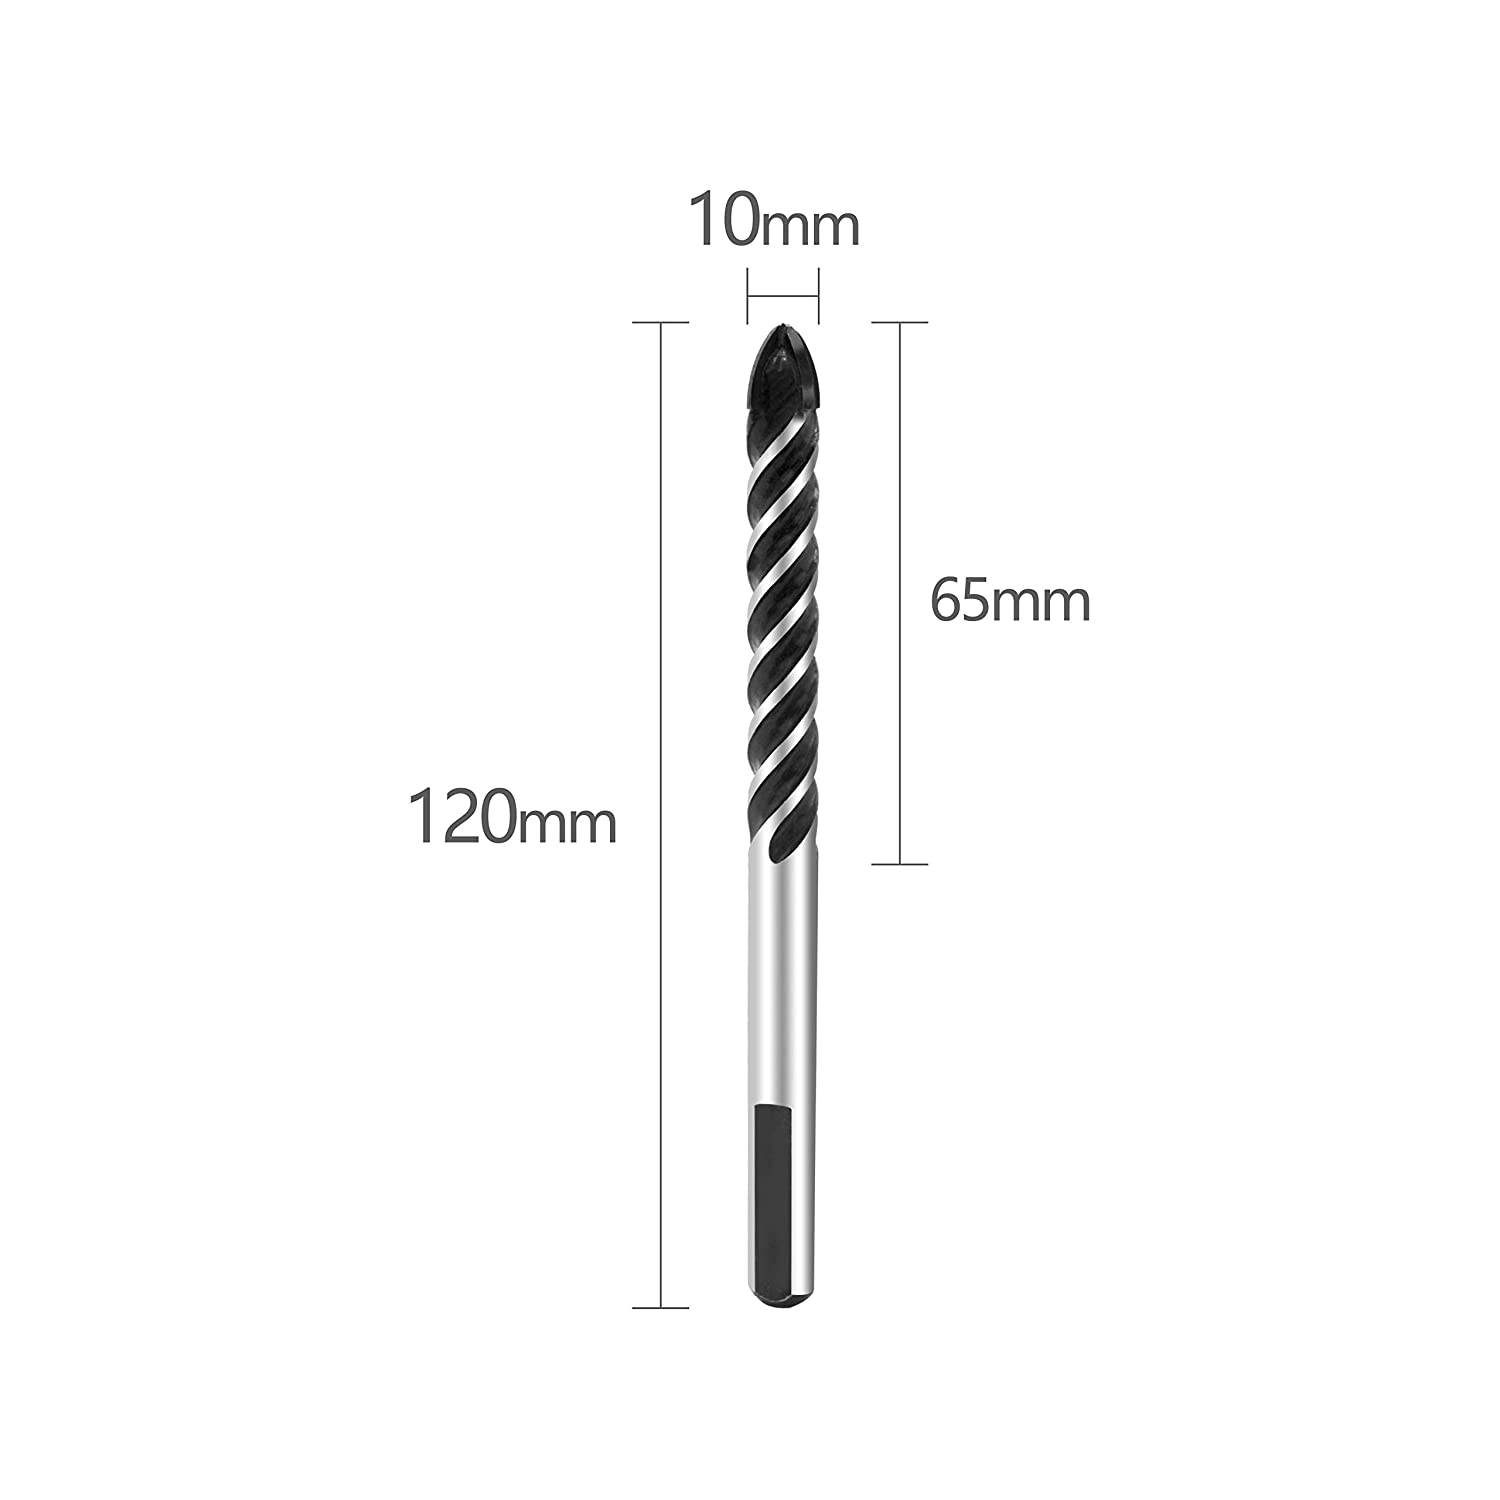 Tungsten Carbide Tip Drill Bits for Porcelain Ceramic Tile 4 Cutting Edges Cross Spear Head Pack of 5 Glass Plastic Wood Brick Wall Concrete Mirrors Masonry Drill Bits Set 10mm